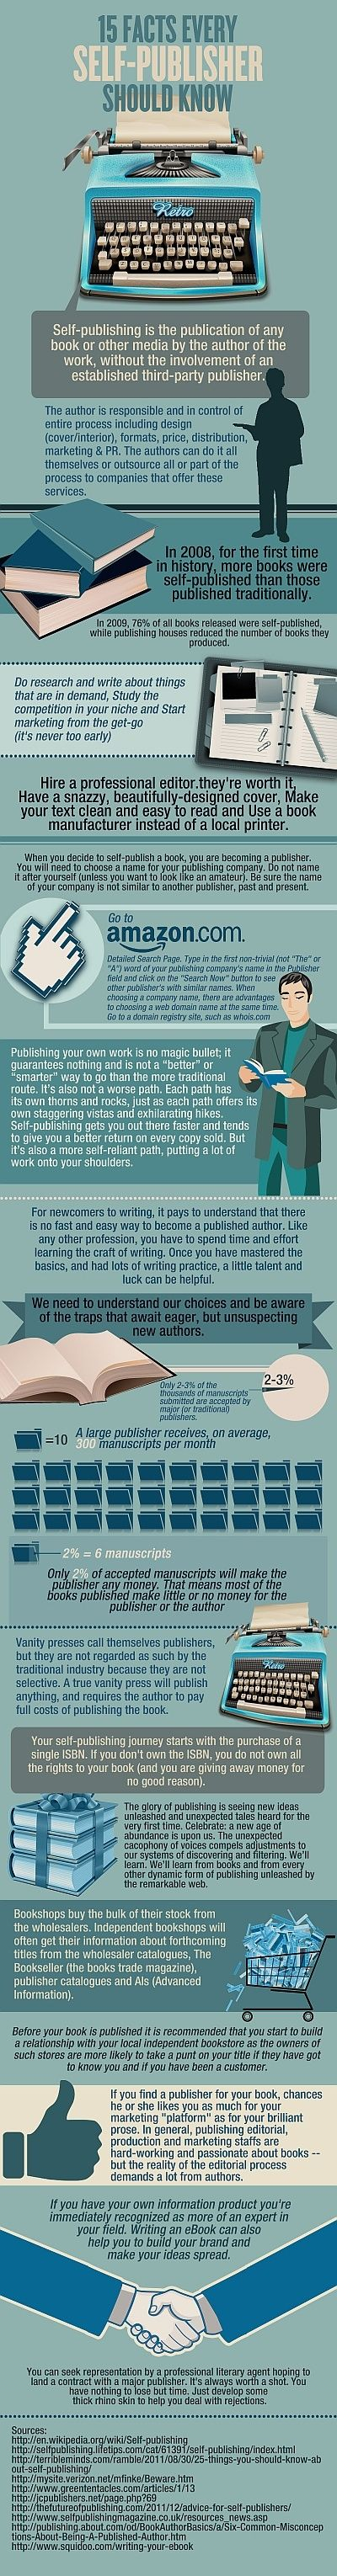 """15 Facts Every Self-Publisher Should Know: """"Is Self-Publishing Right for You? With Angela Bole & Charlotte Pierce"""" 